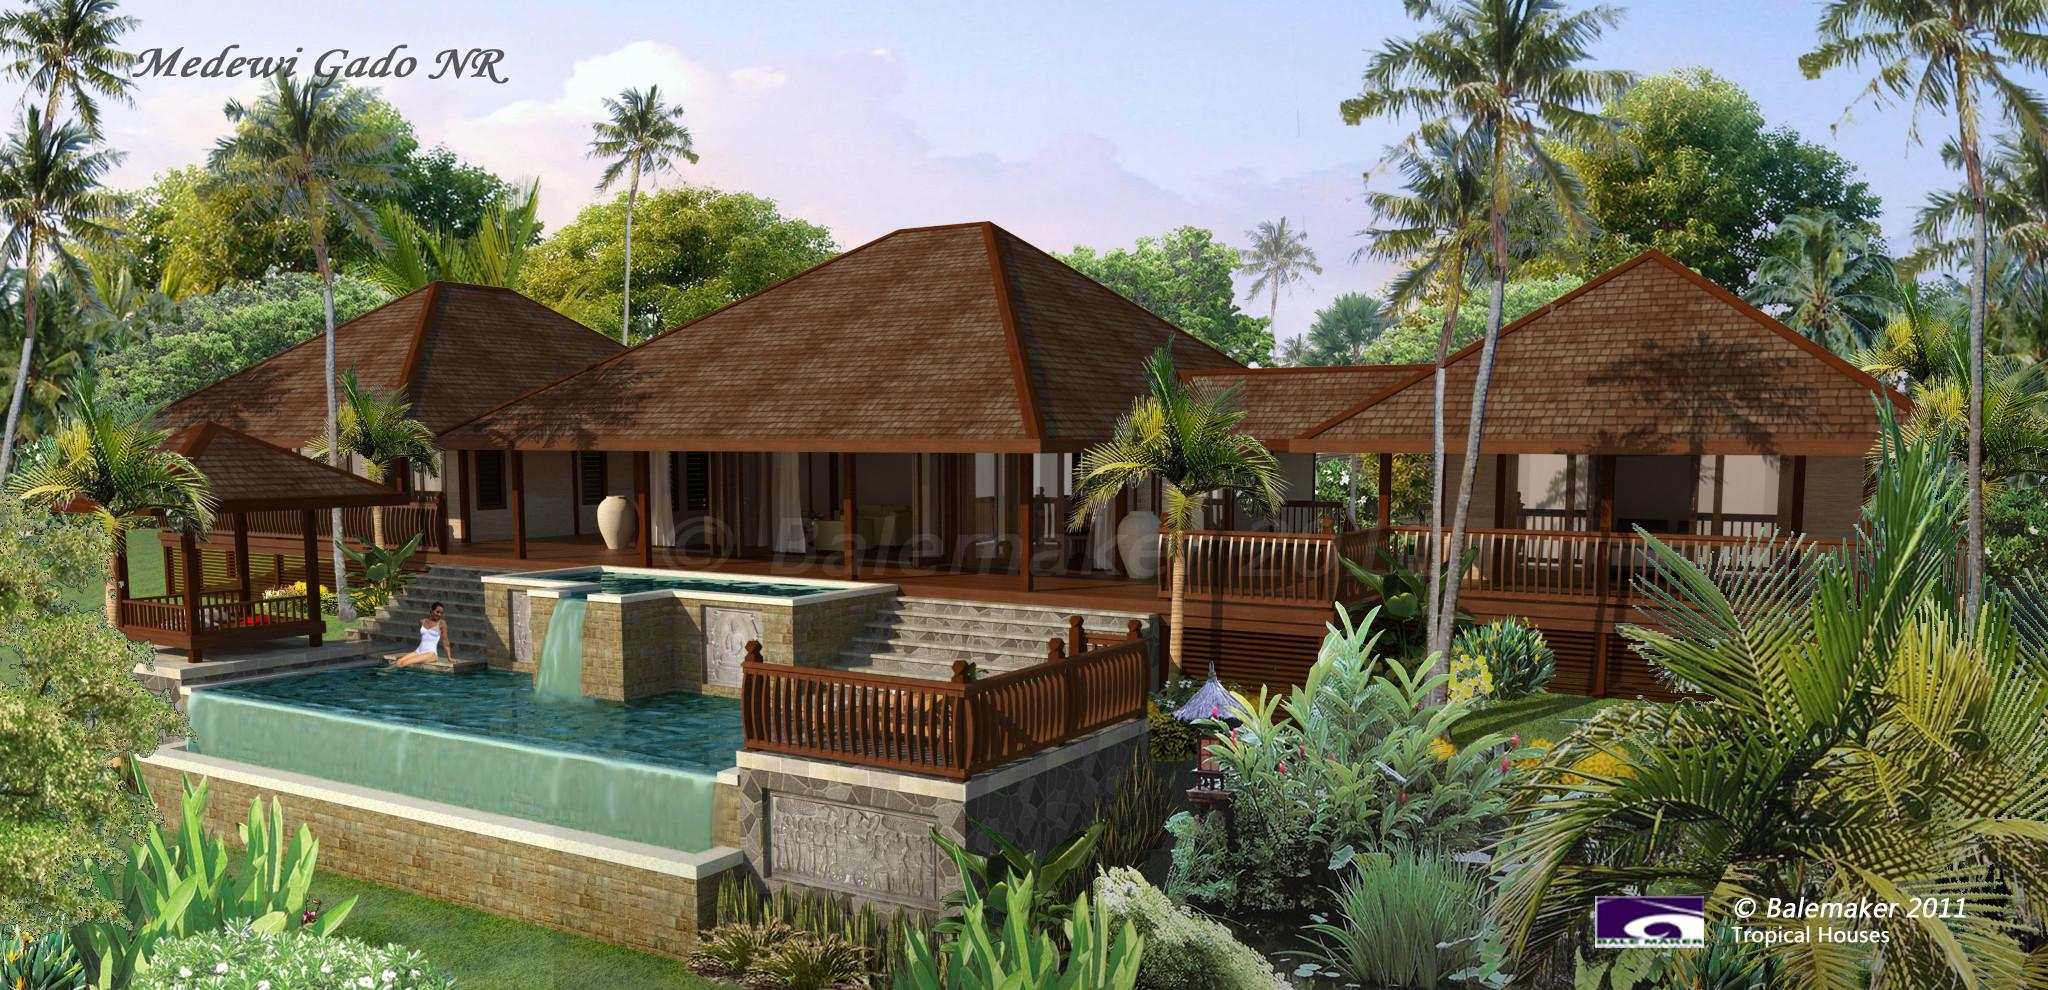 Balemaker Tropical Houses House Plans Builder